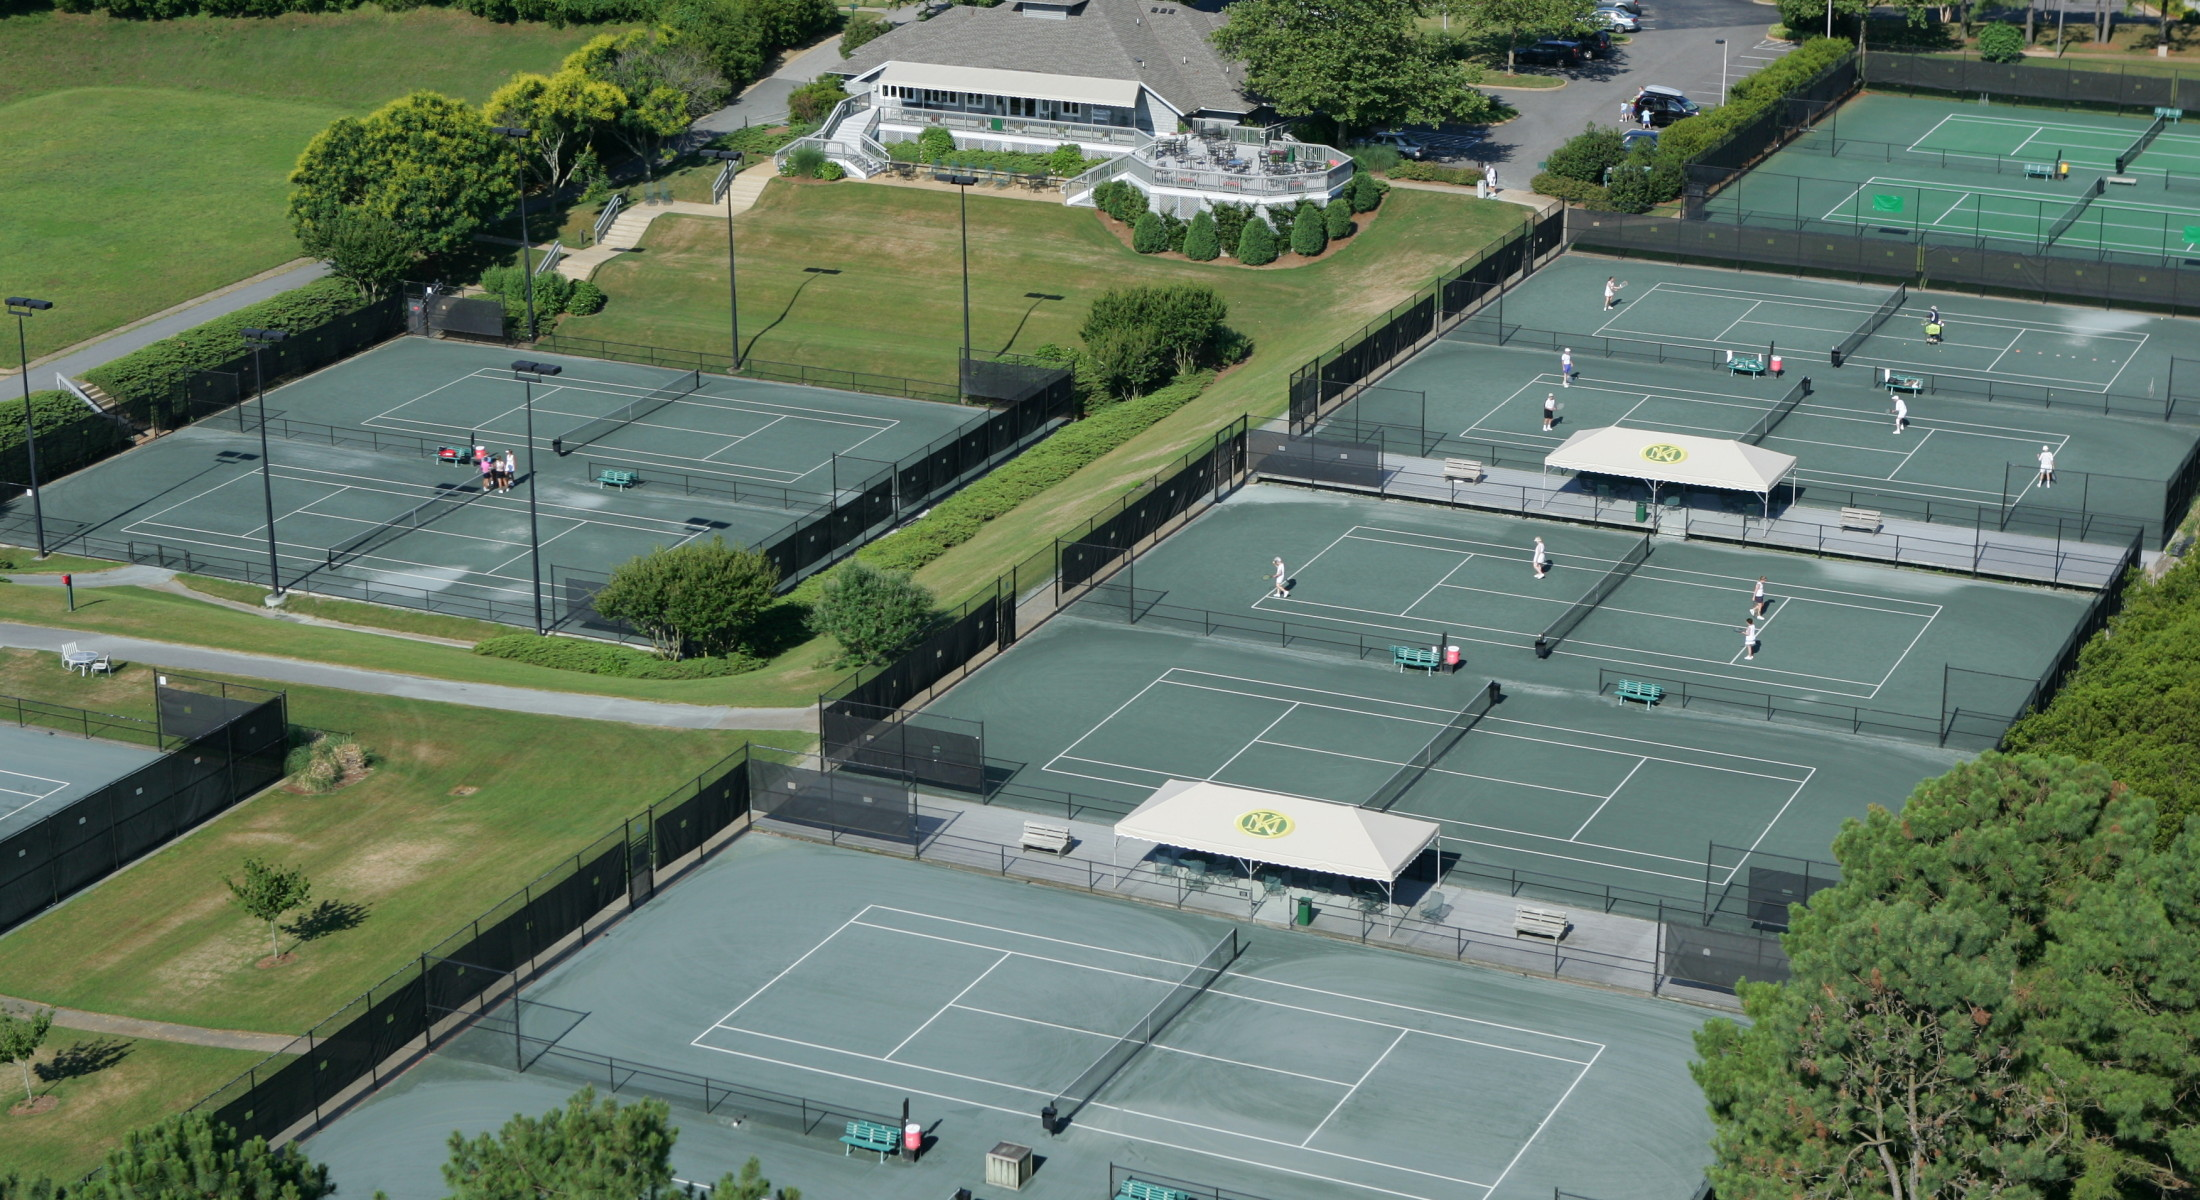 Aerial of Tennis Courts